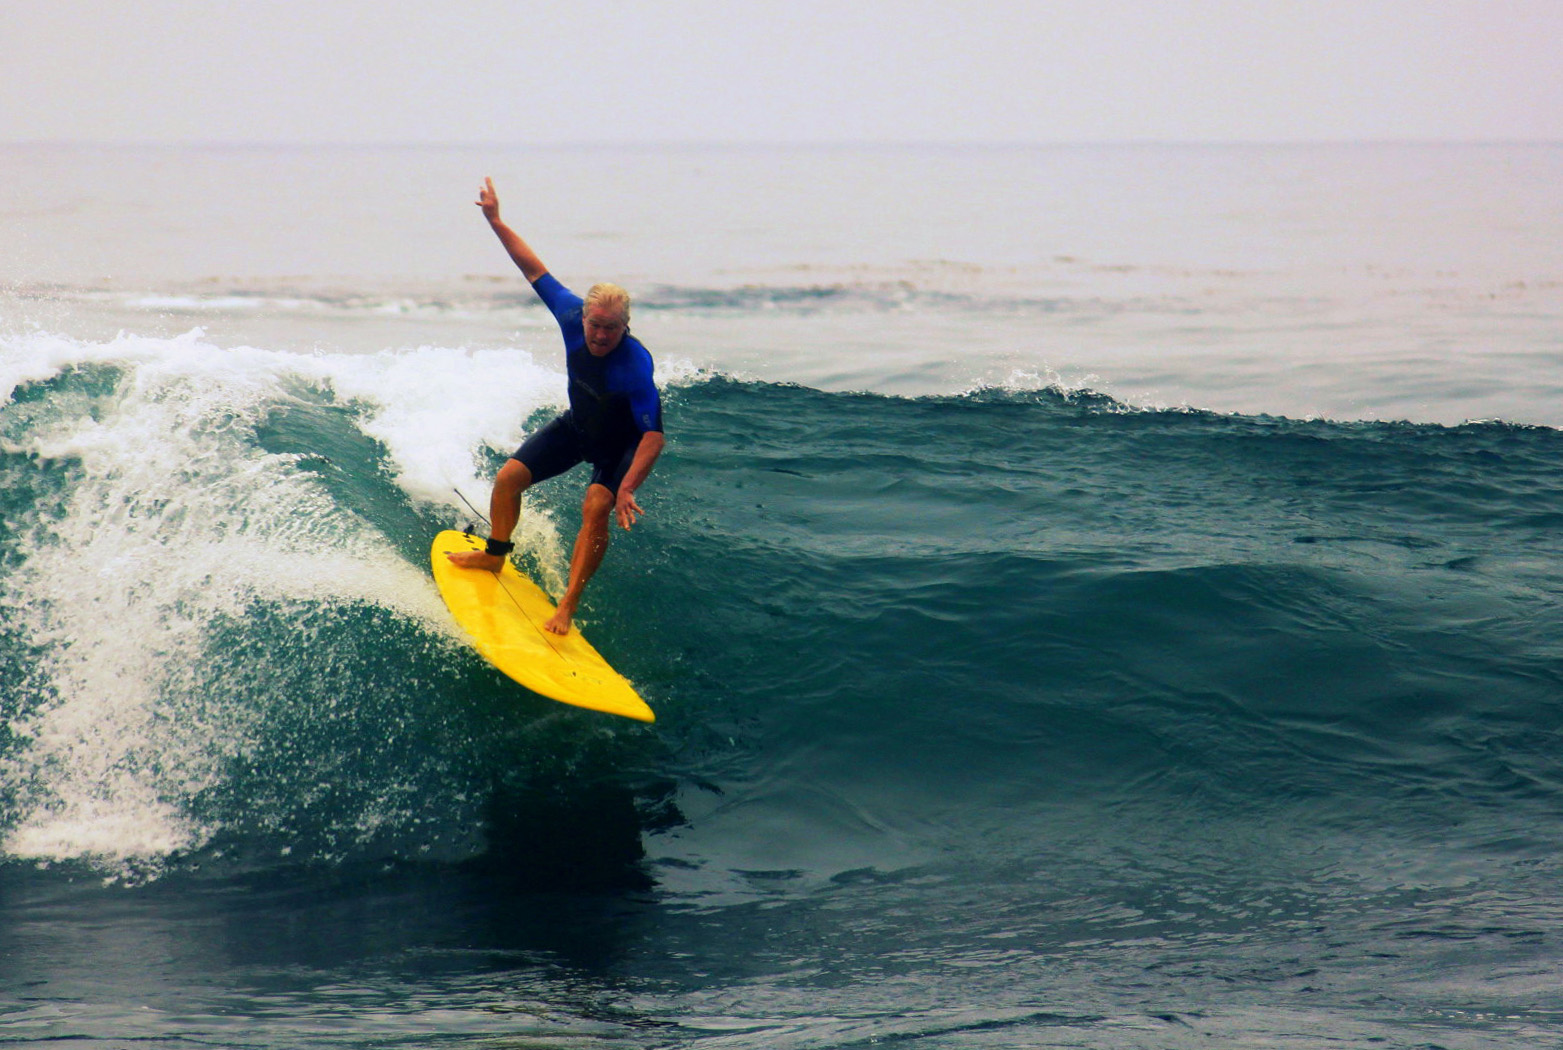 DOUG SURFING IN LAGUNA BEACH CA.  BUSINESS IS A BIT LIKE SURFING - MANAGING A MYRIAD OF UNCERTAINTIES AND MANEUVERING THROUGH THEM.